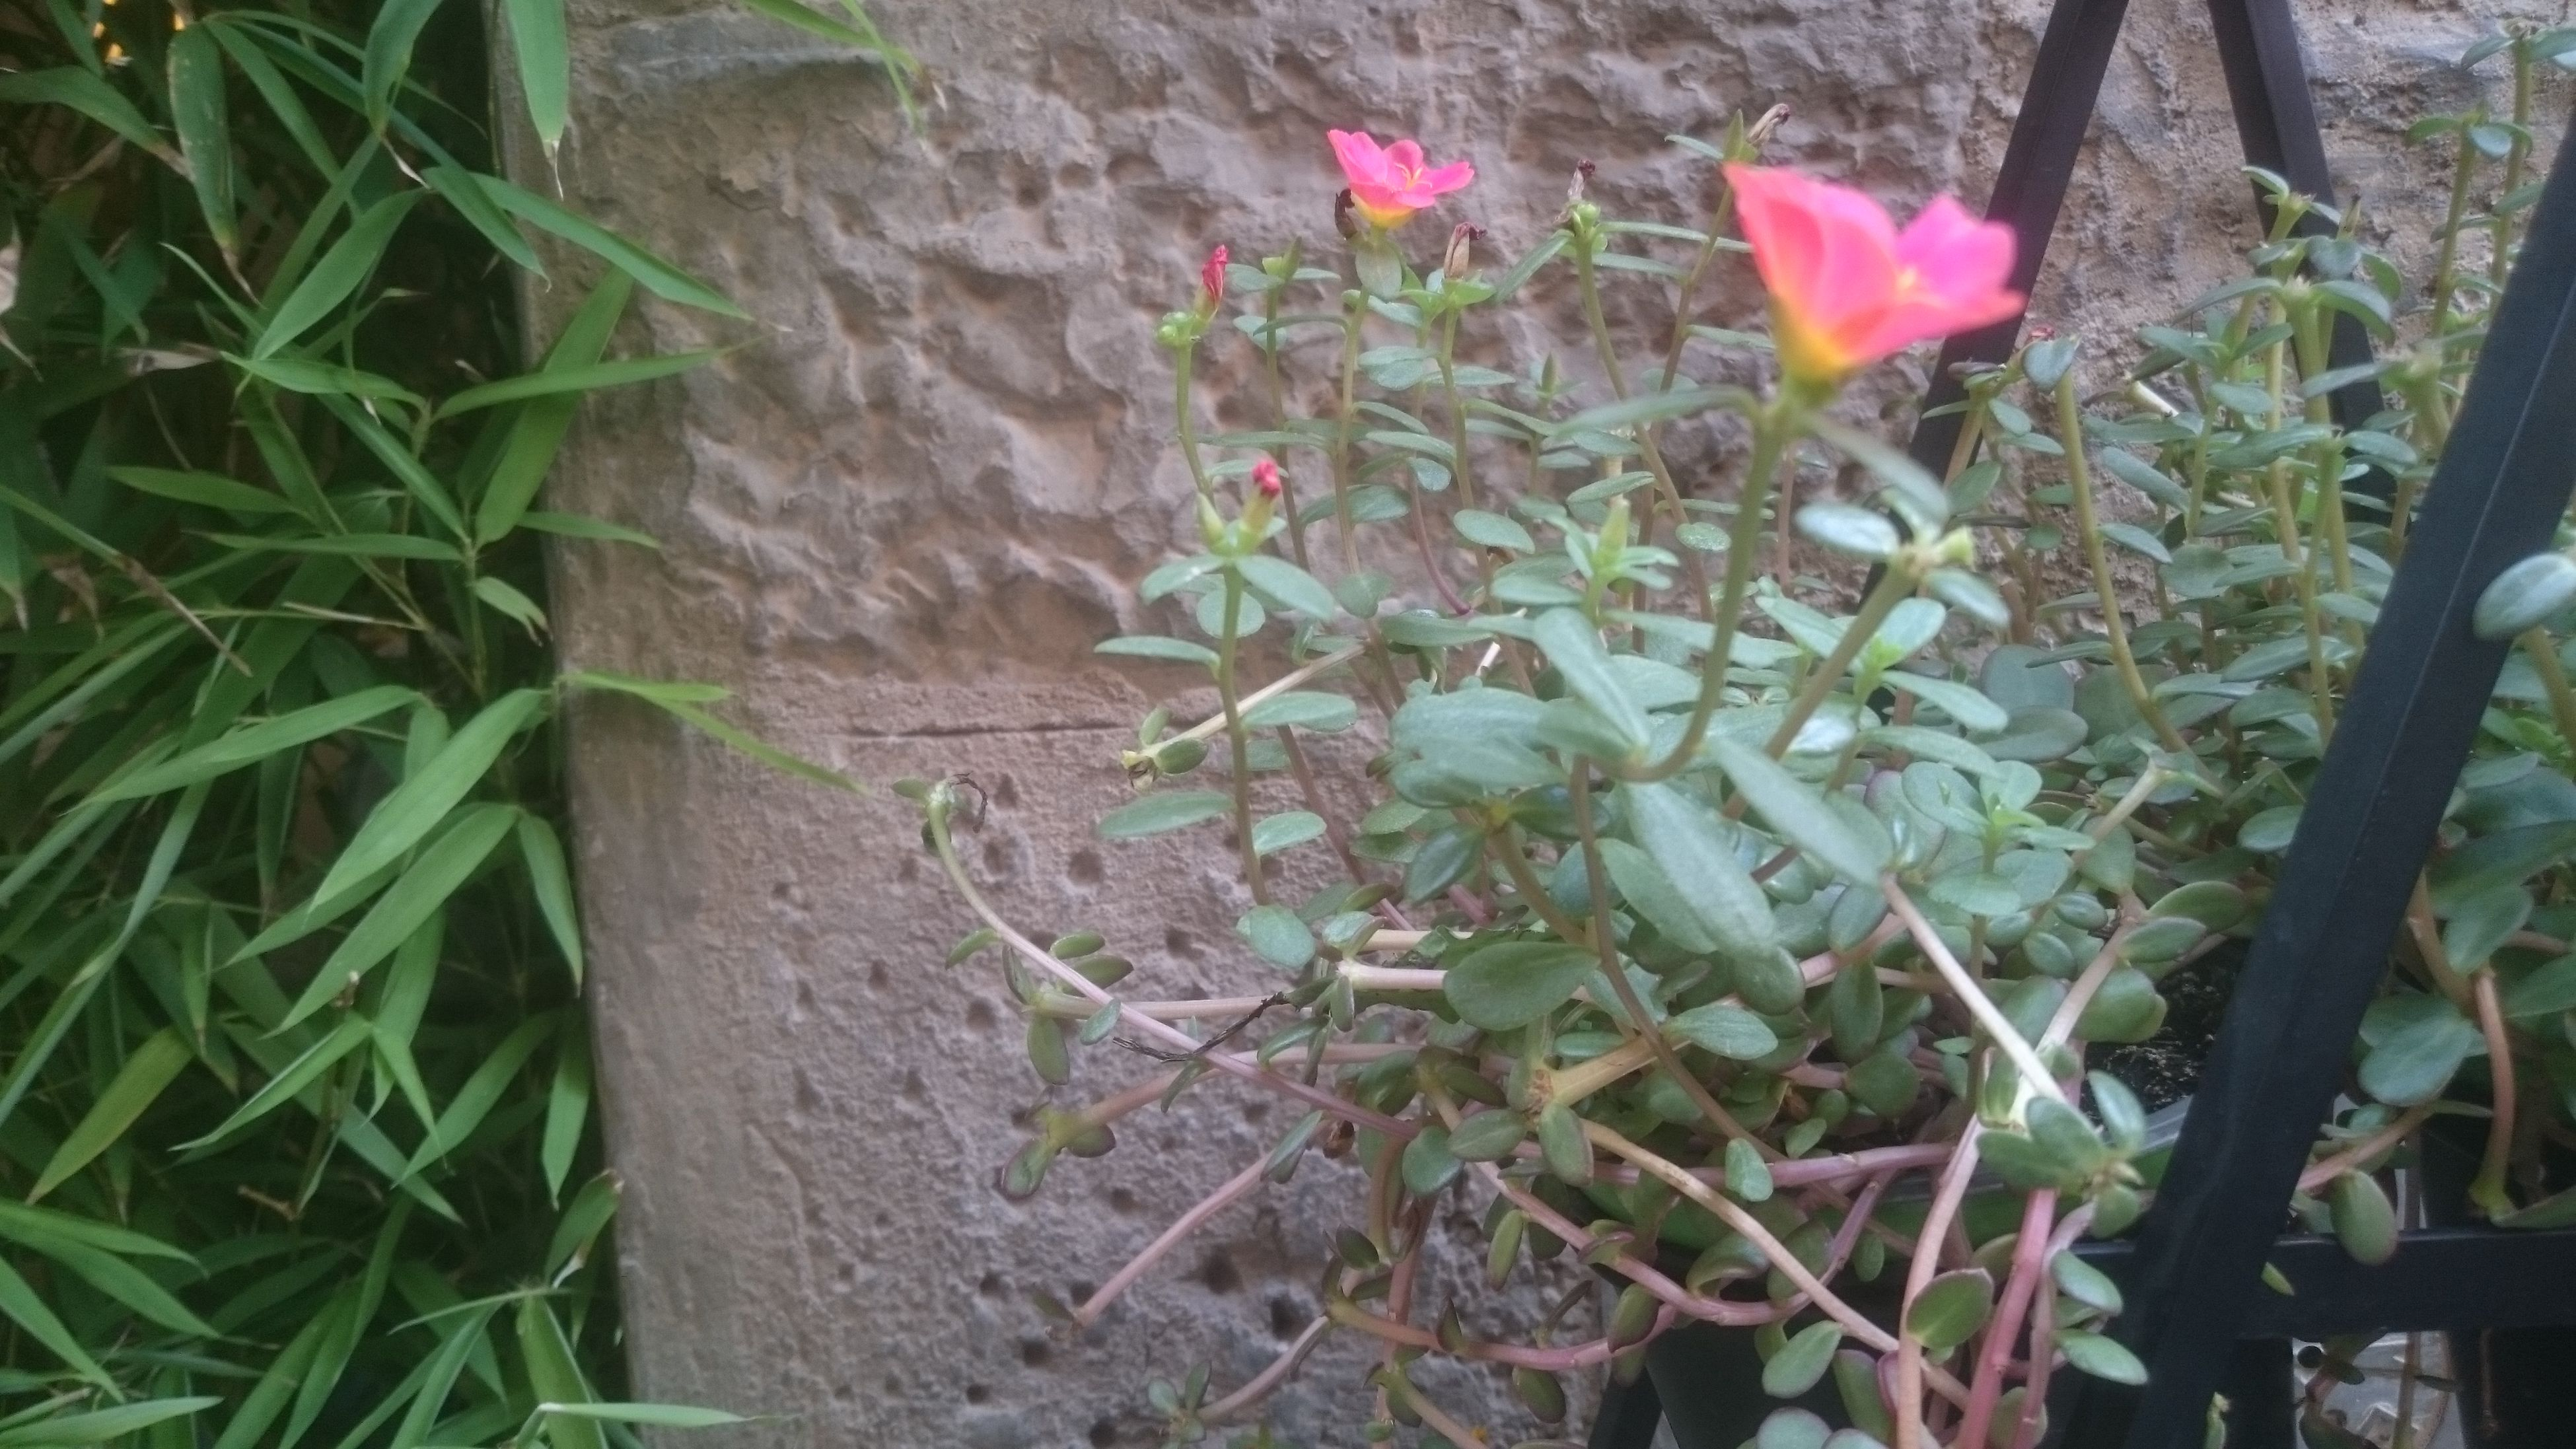 flower, growth, fragility, freshness, plant, leaf, petal, in bloom, flower head, beauty in nature, growing, springtime, nature, wall - building feature, close-up, stem, single flower, green color, botany, blossom, pink color, green, day, outdoors, blooming, plant life, vibrant color, softness